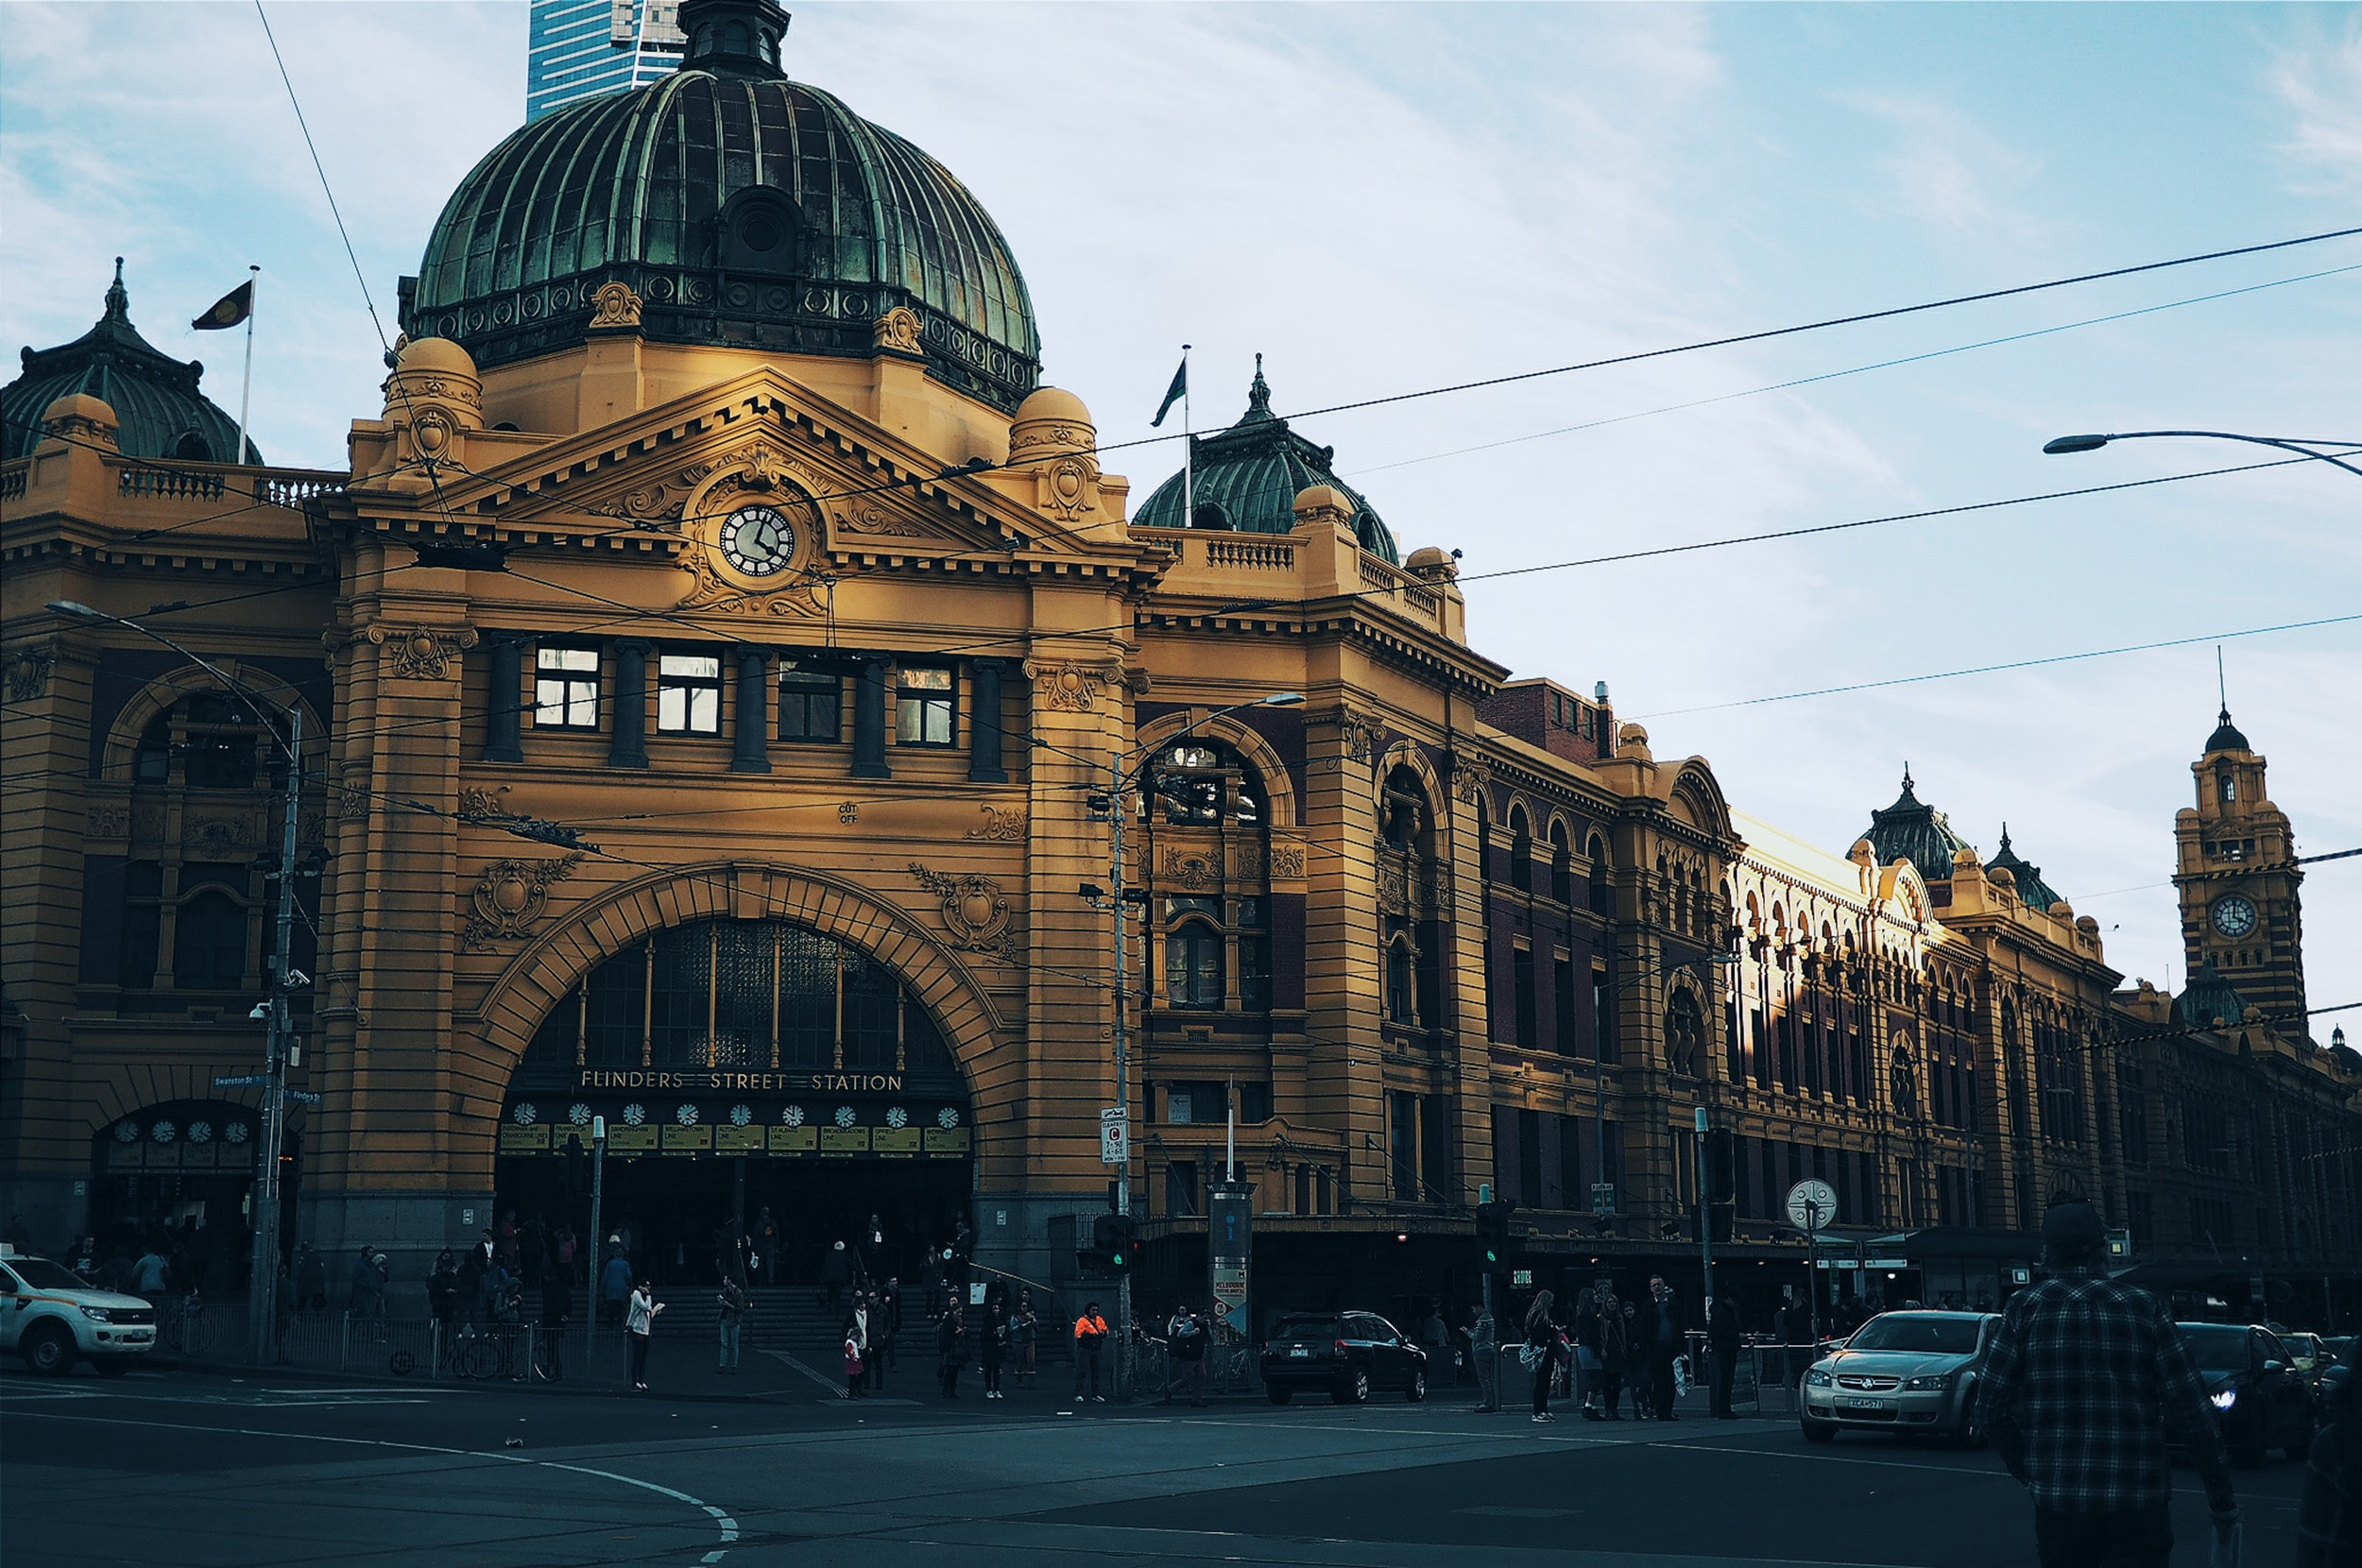 Cars on driving on road in front of Flinders Street Railway Station on clear day